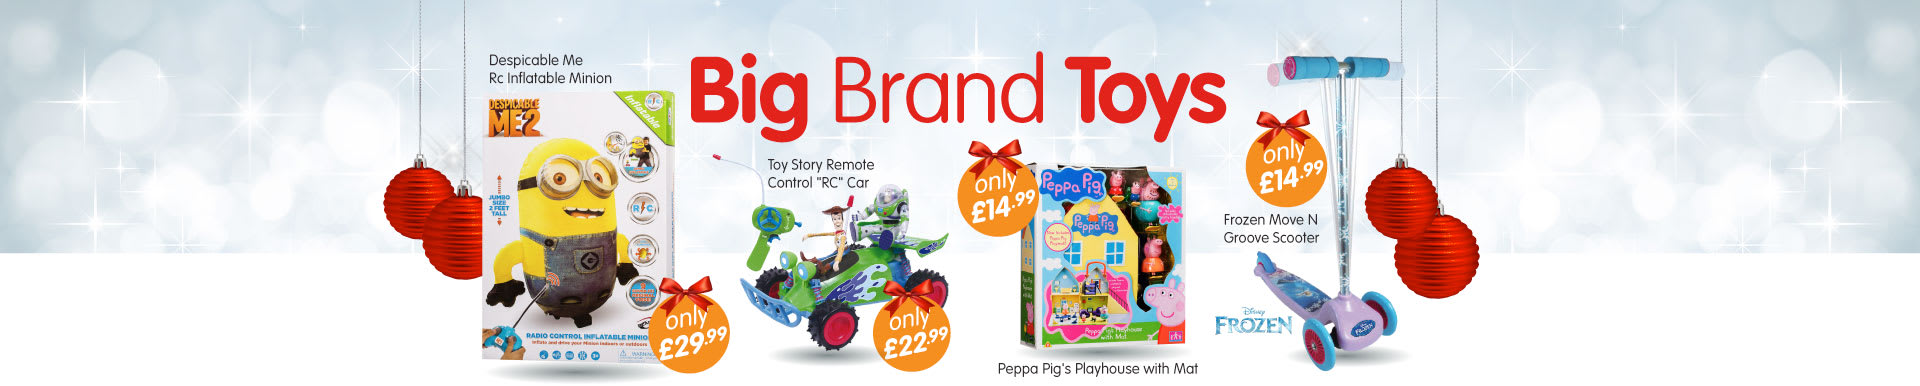 Great selection of branded toys for Christmas at B&M Stores.